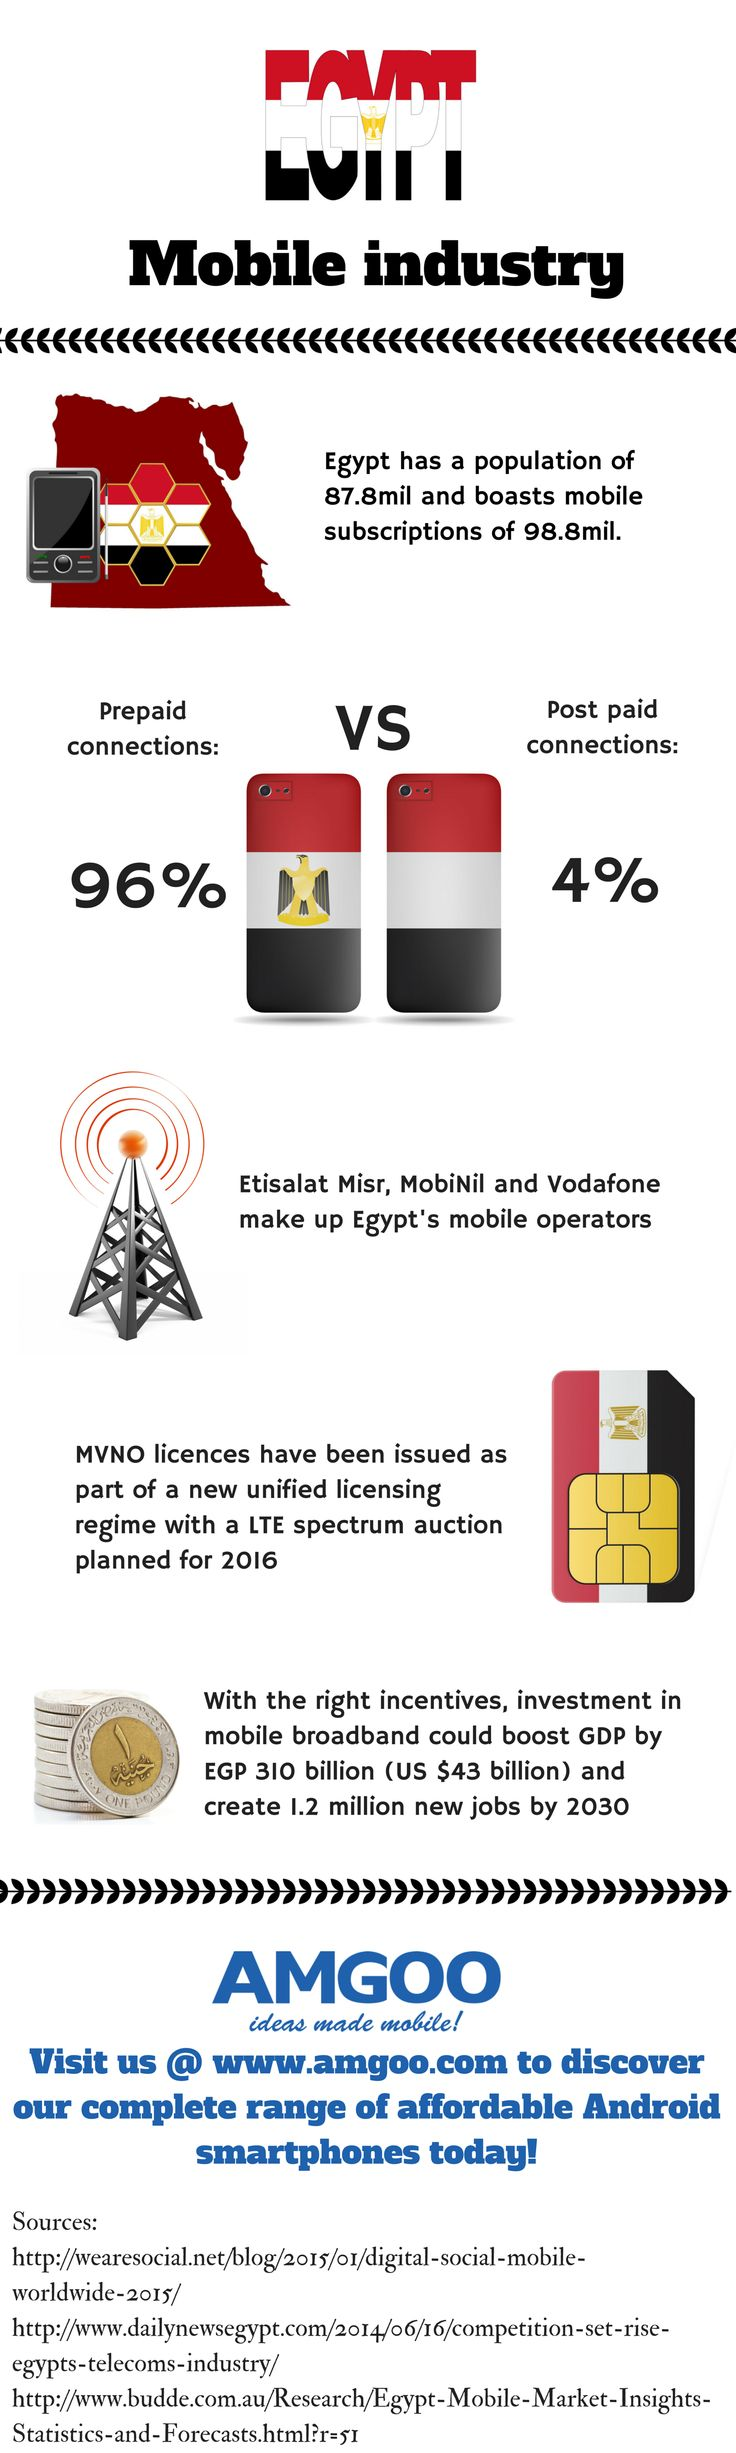 Check out the current state of Egypt's mobile industry in this infographic! #AMGOO #EgyptMobileIndustry